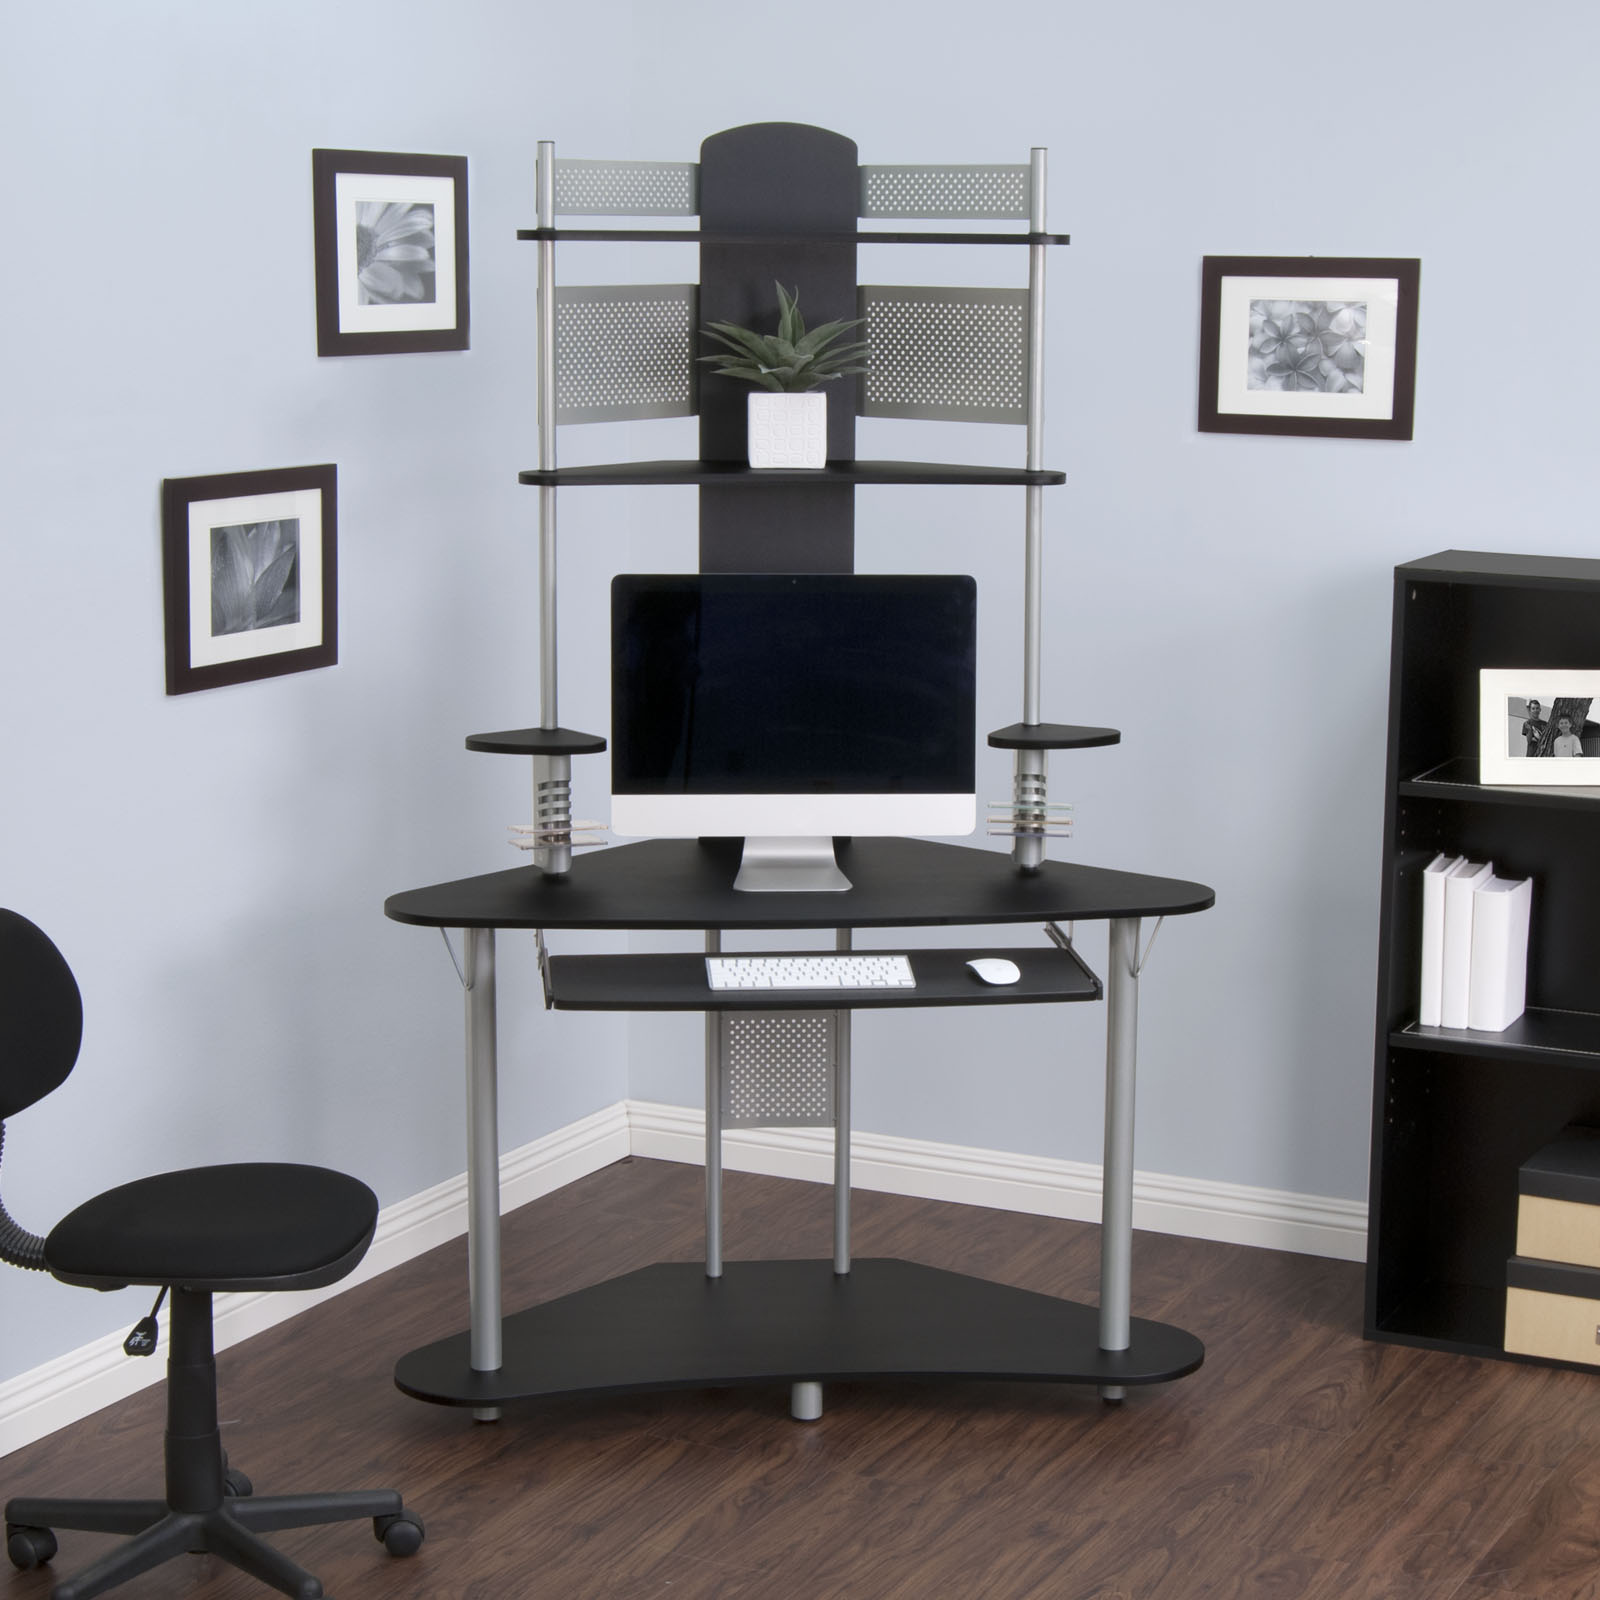 Studio Designs Home Office Furniture Arch Tower Computer Desk Silver And Black